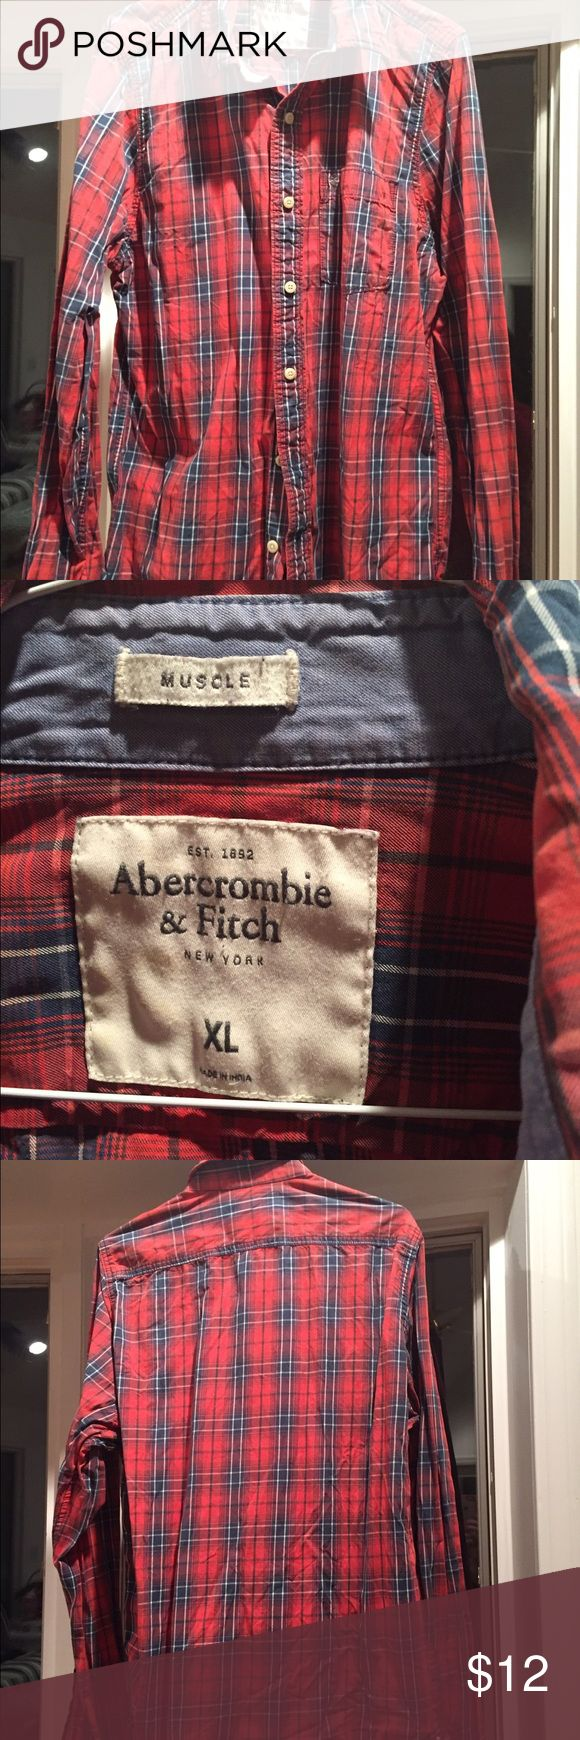 Abercrombie & Fitch Men's shirt Abercrombie & Fitch Men's button down casual shirt. Size XL muscle style. Fits smaller like a regular Large. Abercrombie & Fitch Shirts Casual Button Down Shirts